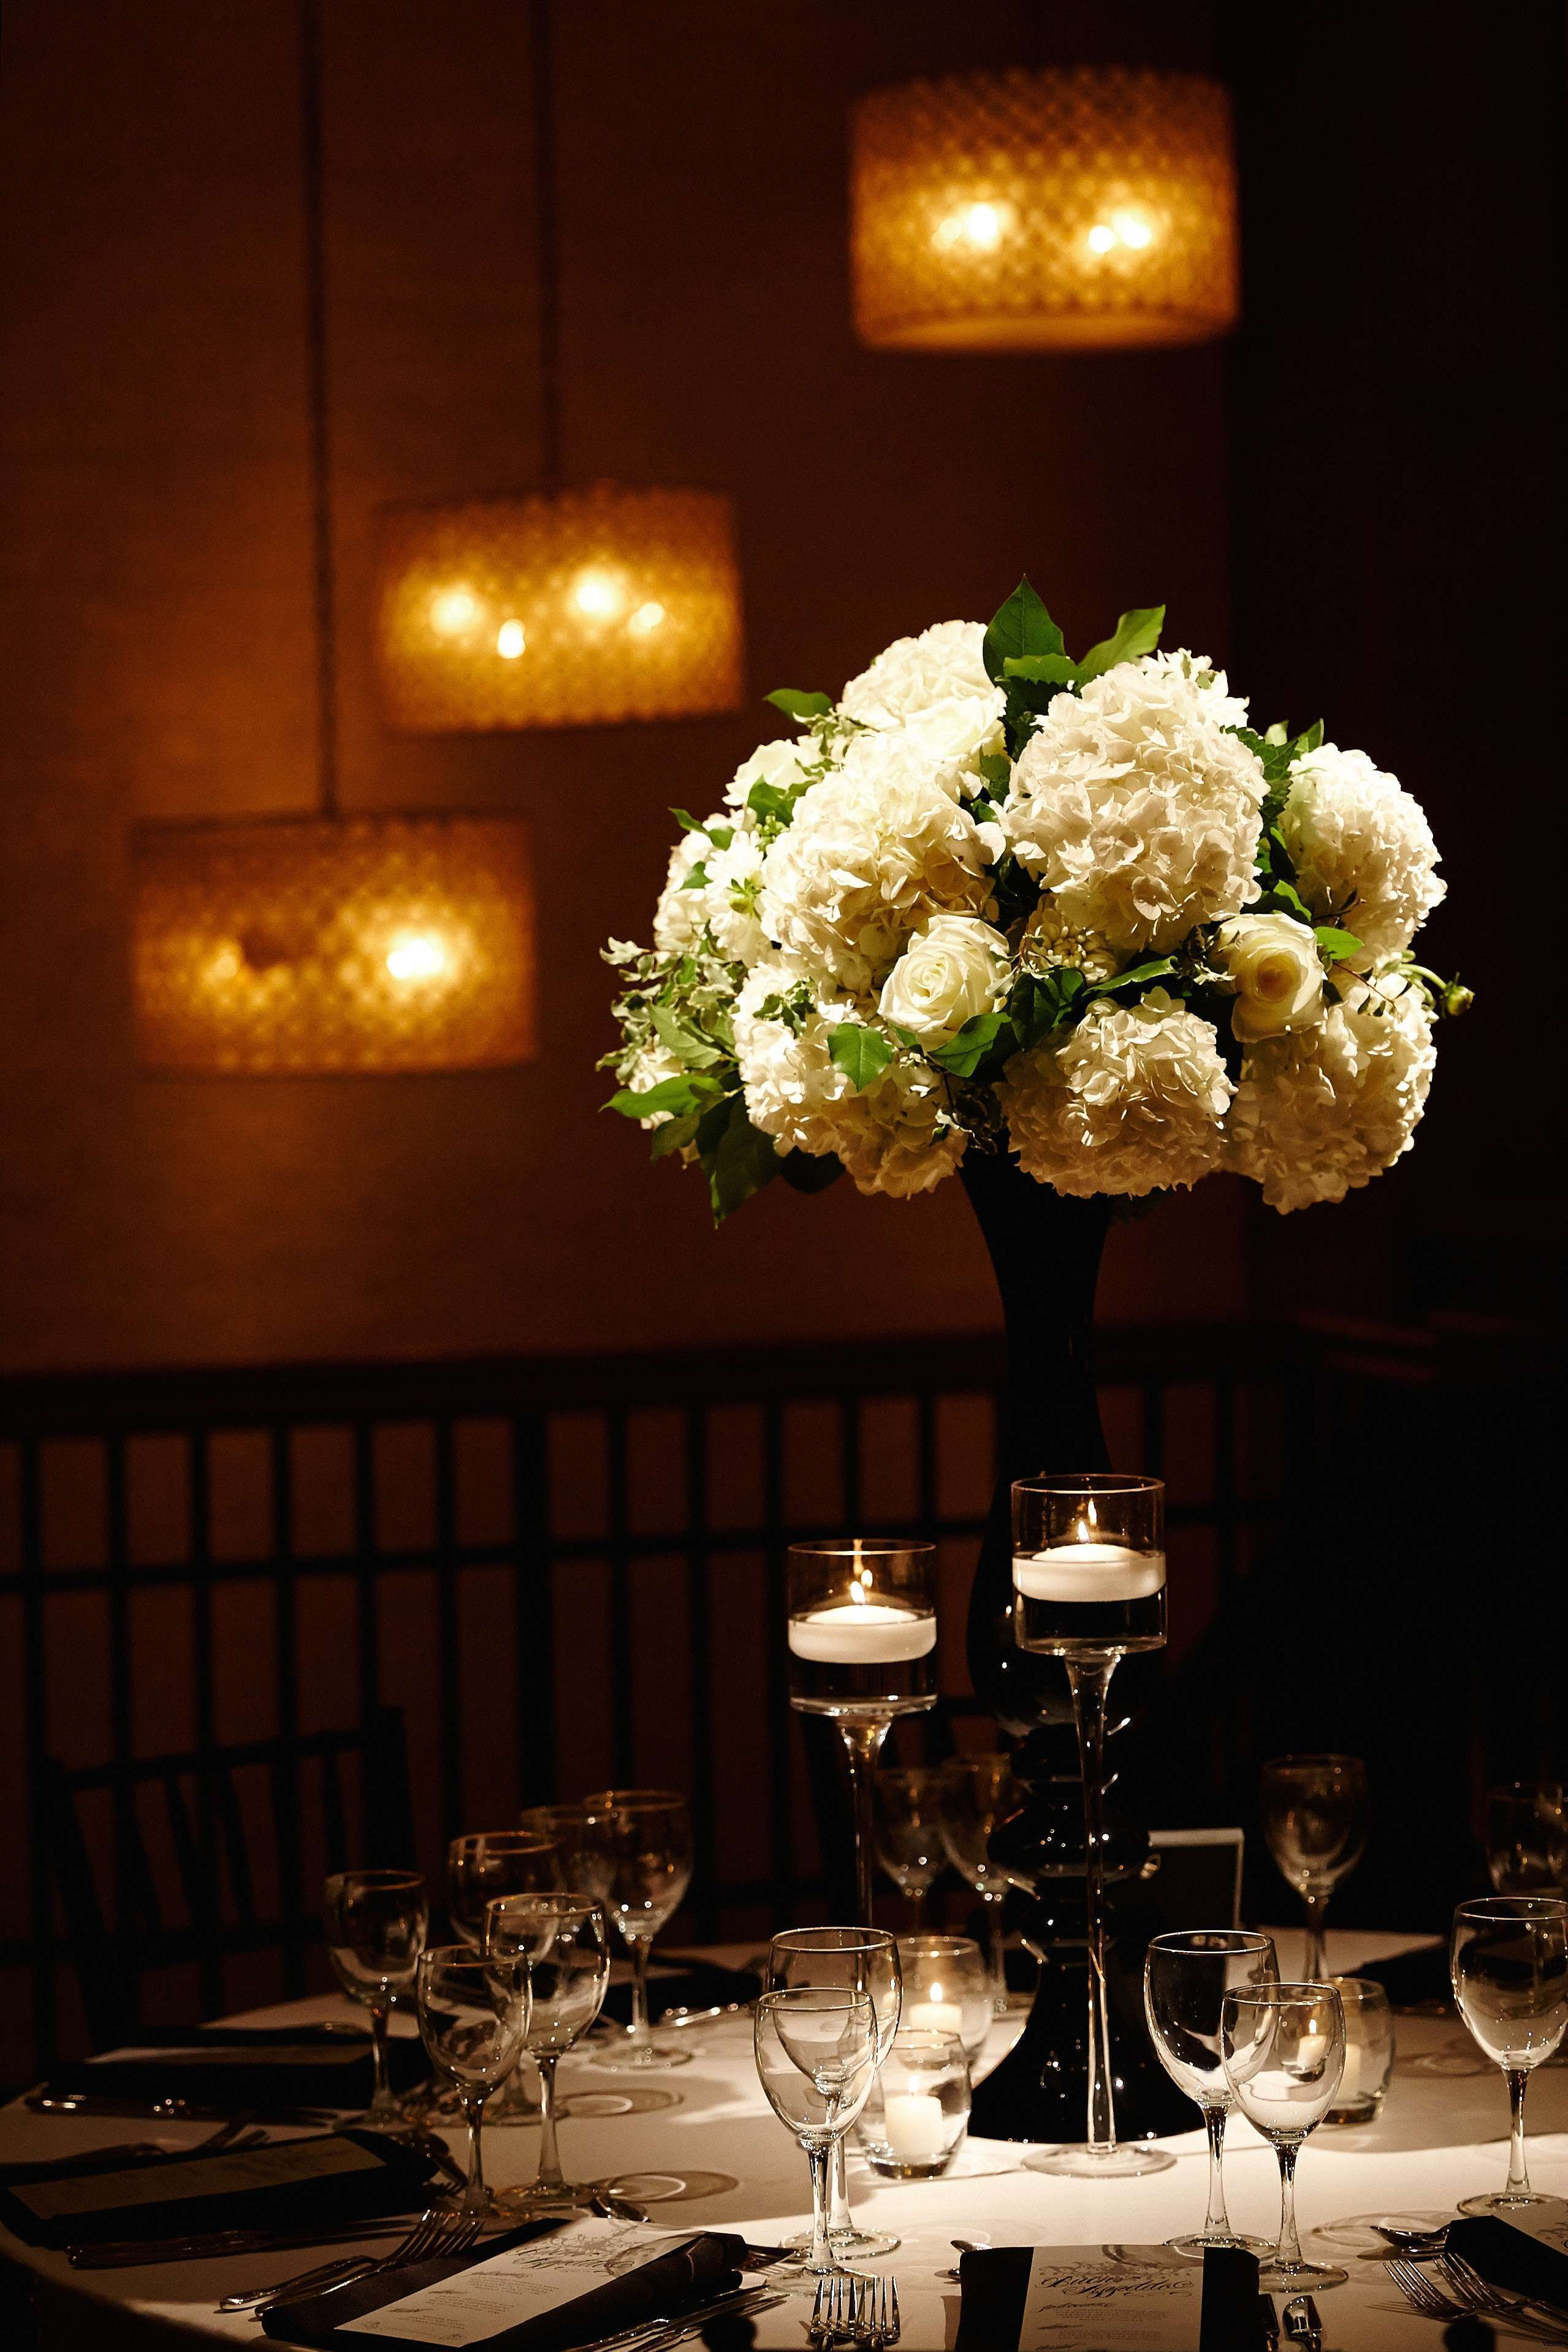 20 Inch Vase Of Gold Sequin Tablecloth wholesale Beautiful Il Fullxfull H Vases Pertaining to Gold Sequin Tablecloth wholesale Beautiful Il Fullxfull H Vases Black Vase White Flowers Zoomi 0d with